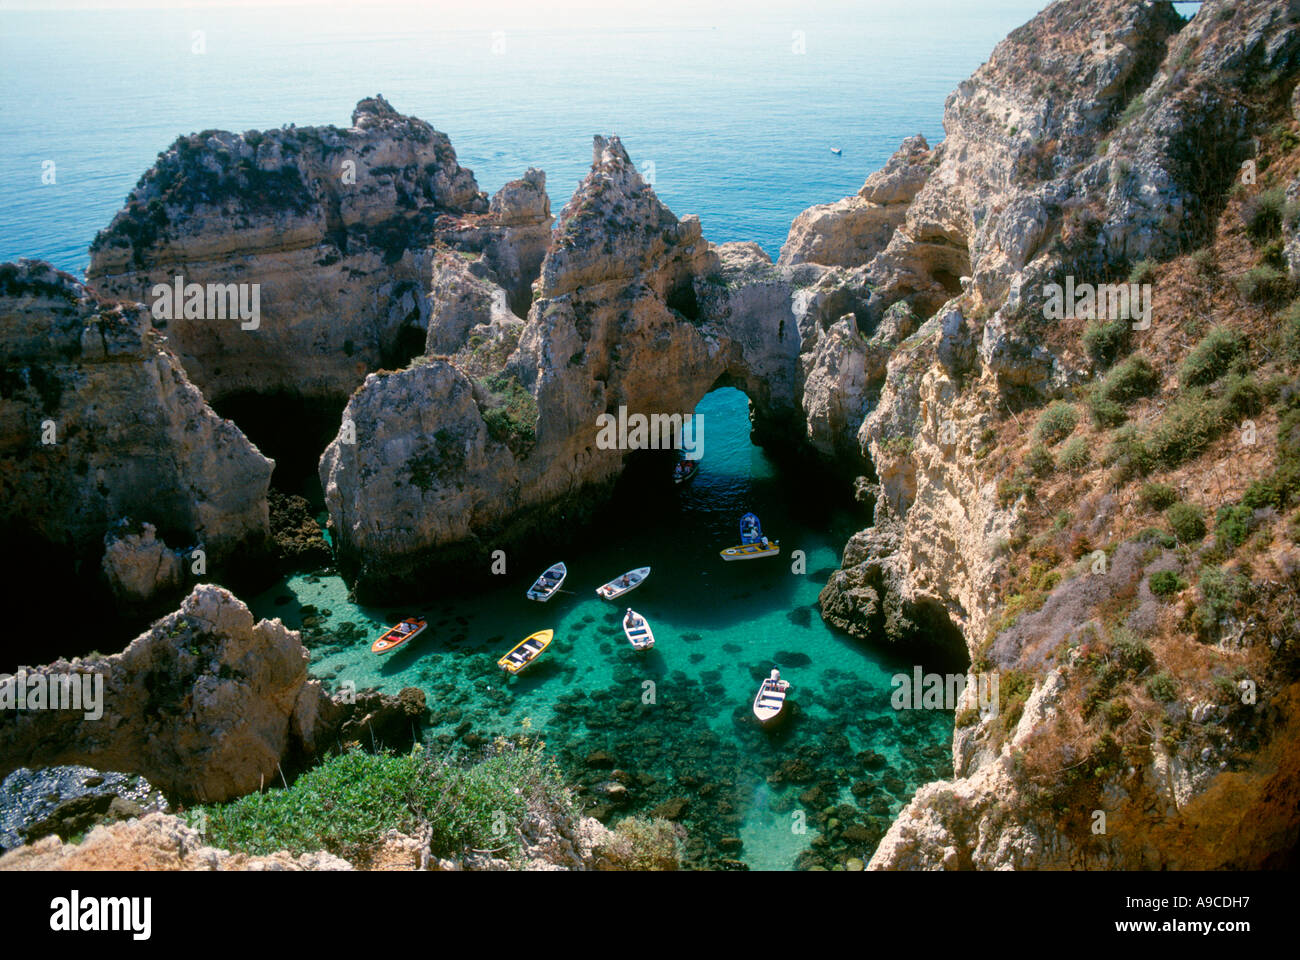 Boat tour Beach resort Lagos Algarve Portugal - Stock Image